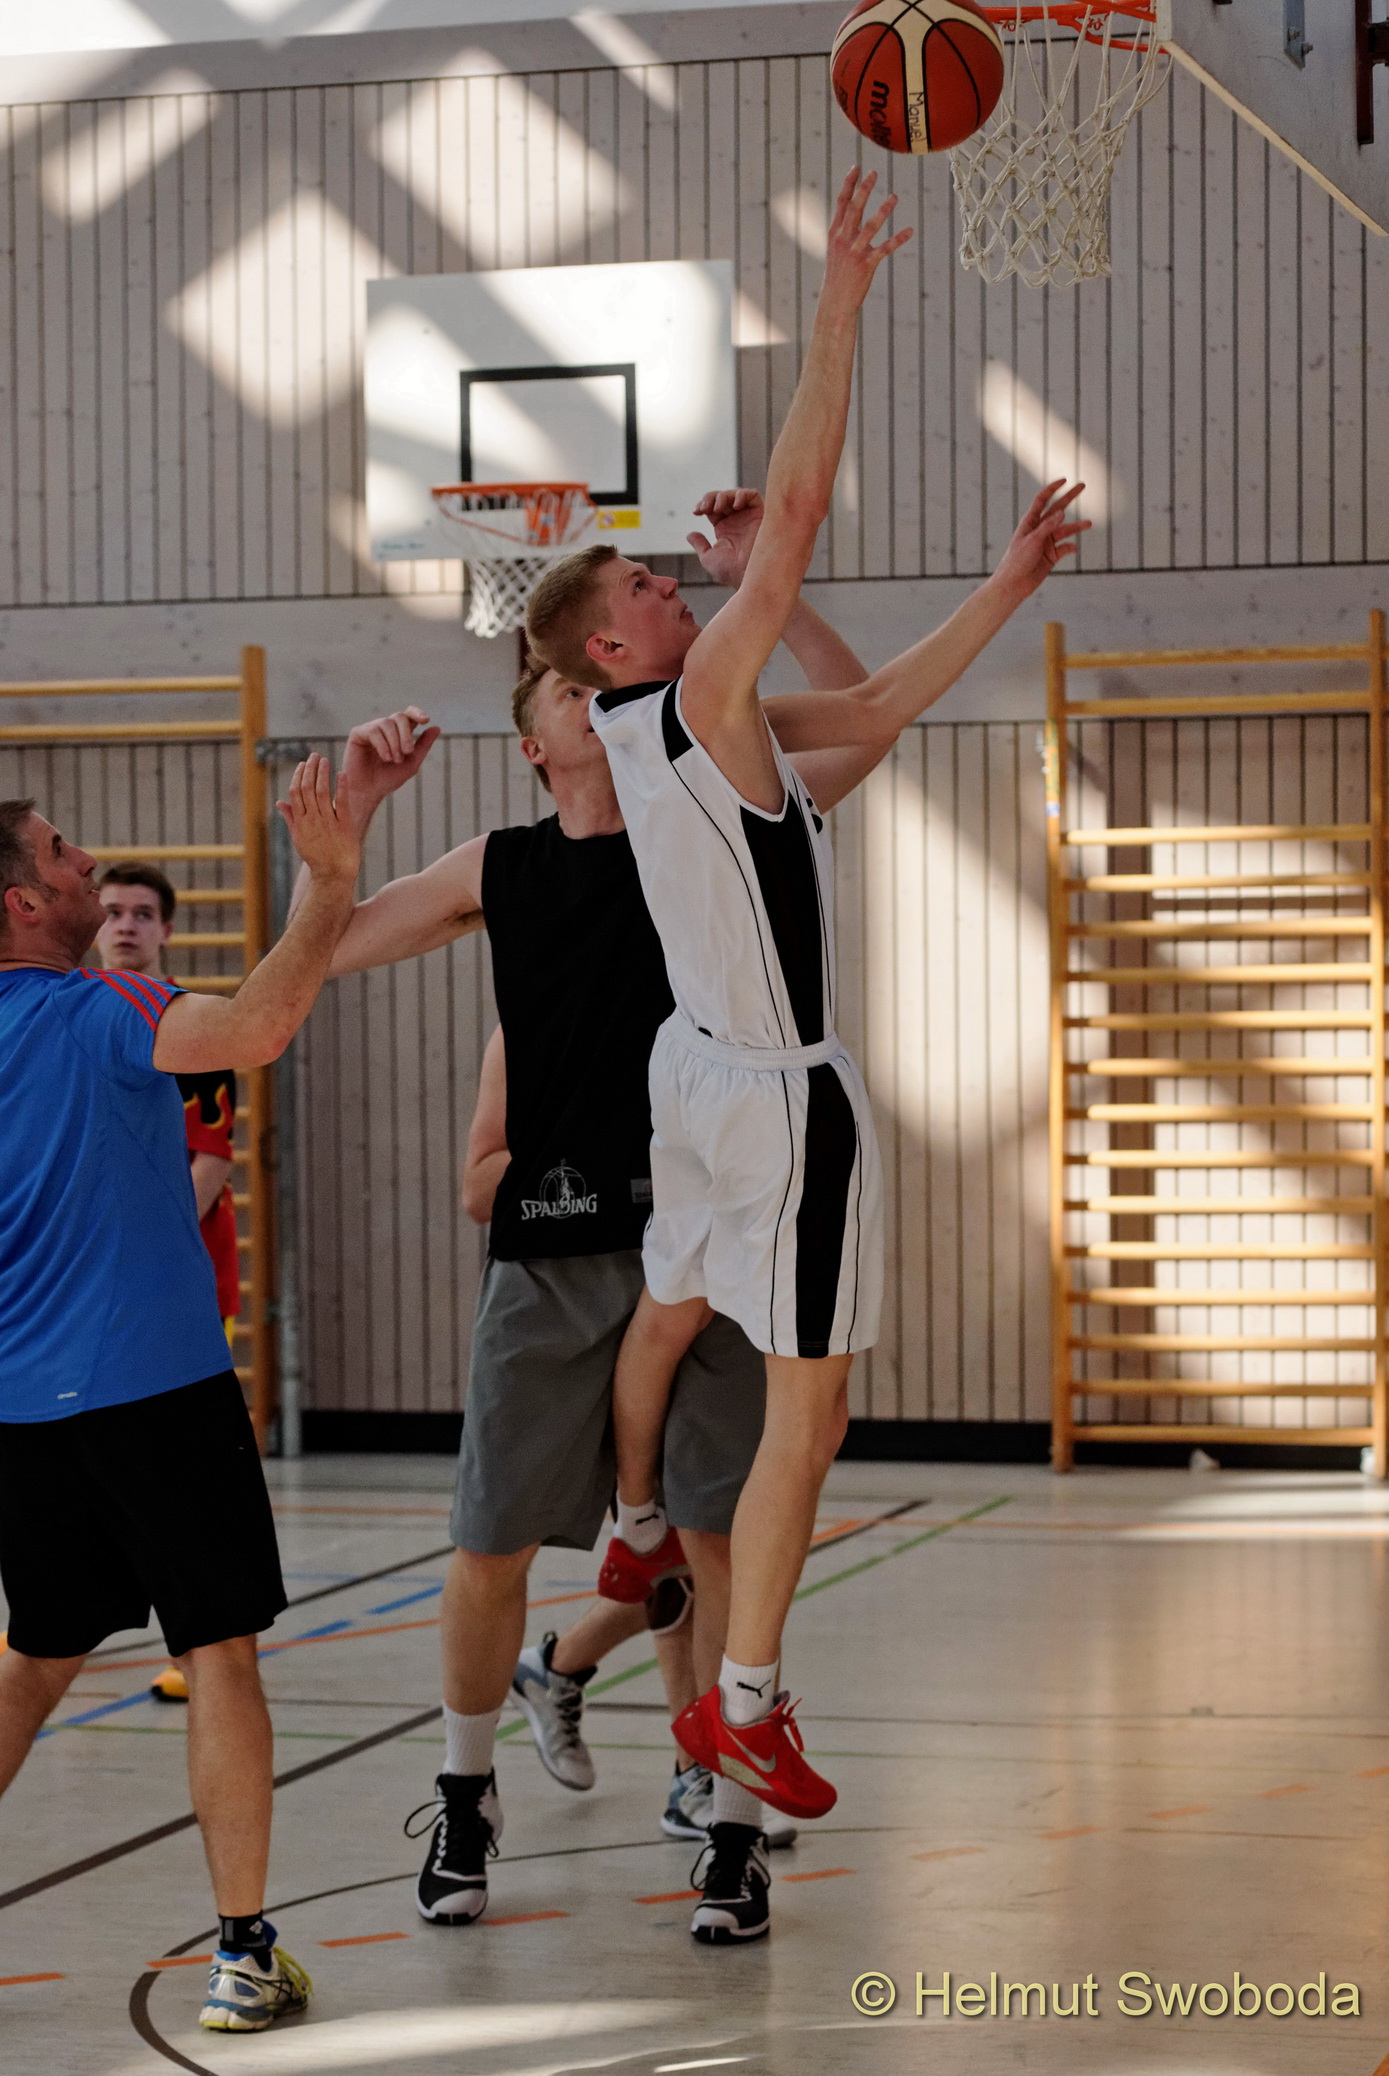 d170402-160609200-100-basketball_weilheim-mixed-turnier_33657315772_o